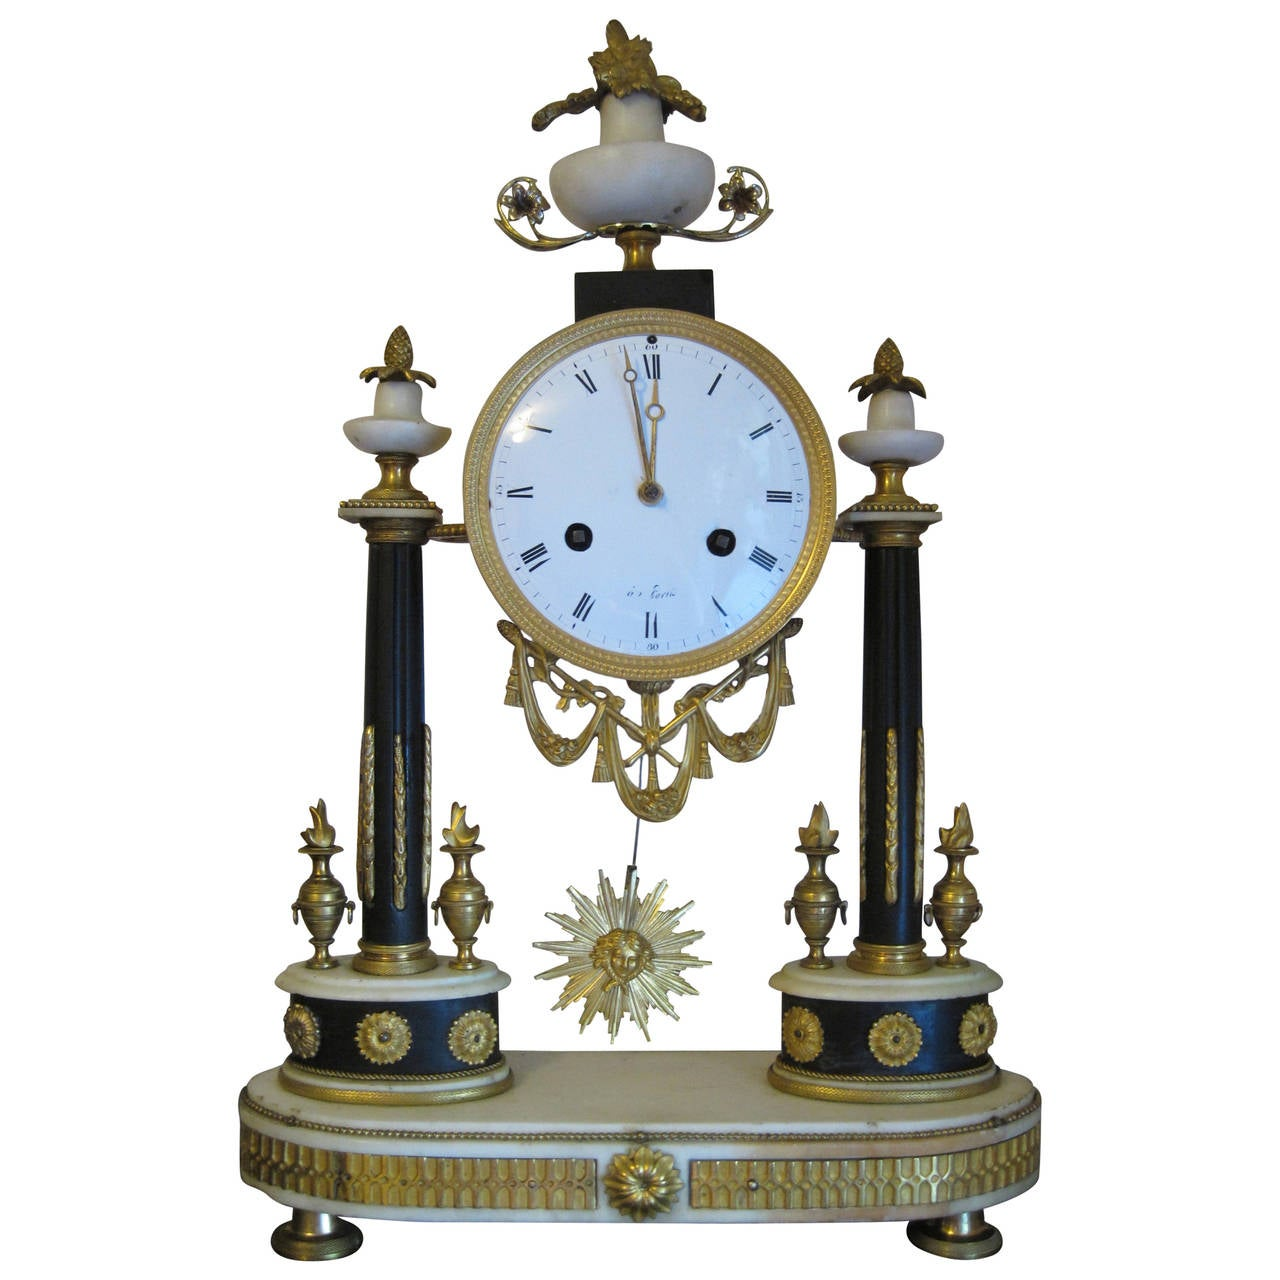 French Empire Period Marble and Ormolu Clock, Early 19th Century